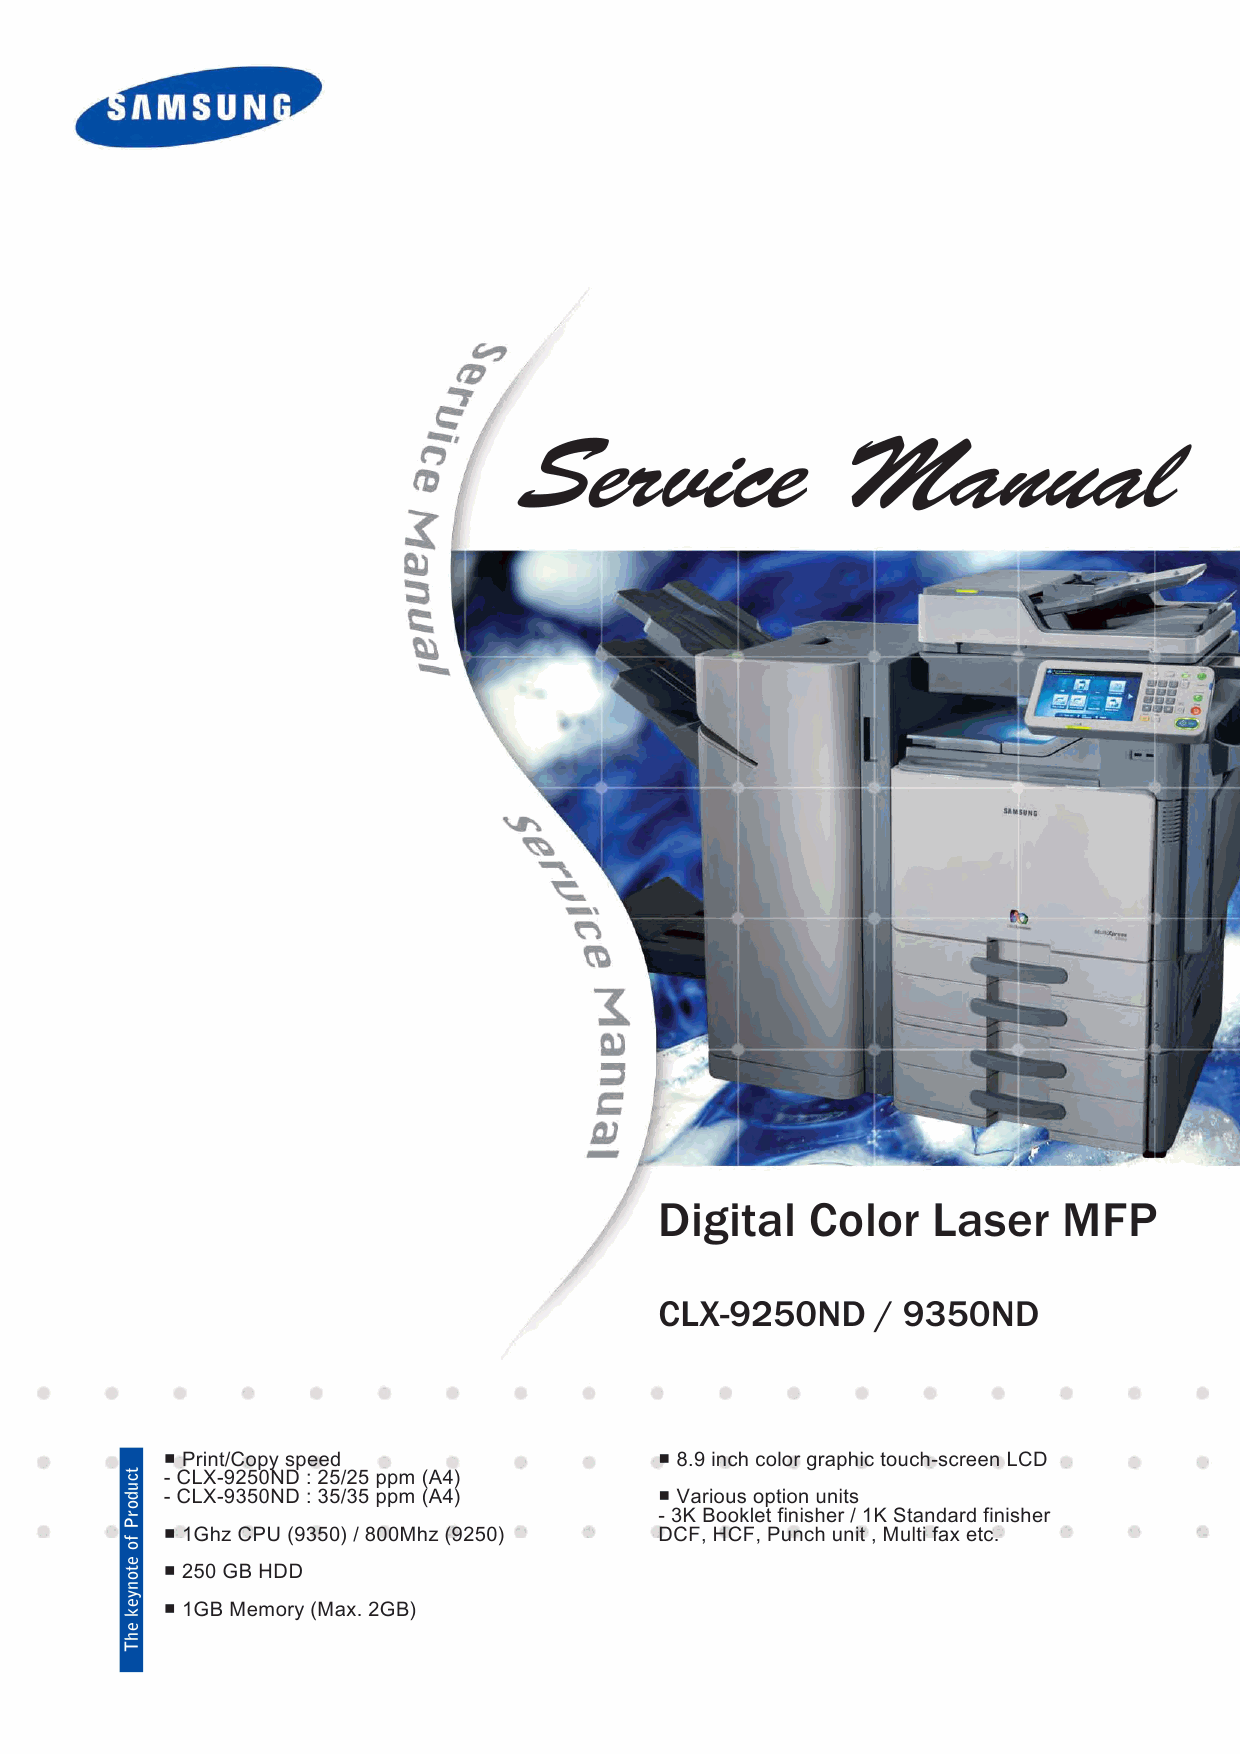 Samsung Digital-Color-Laser-MFP CLX-92509 9359 Service Manual-1